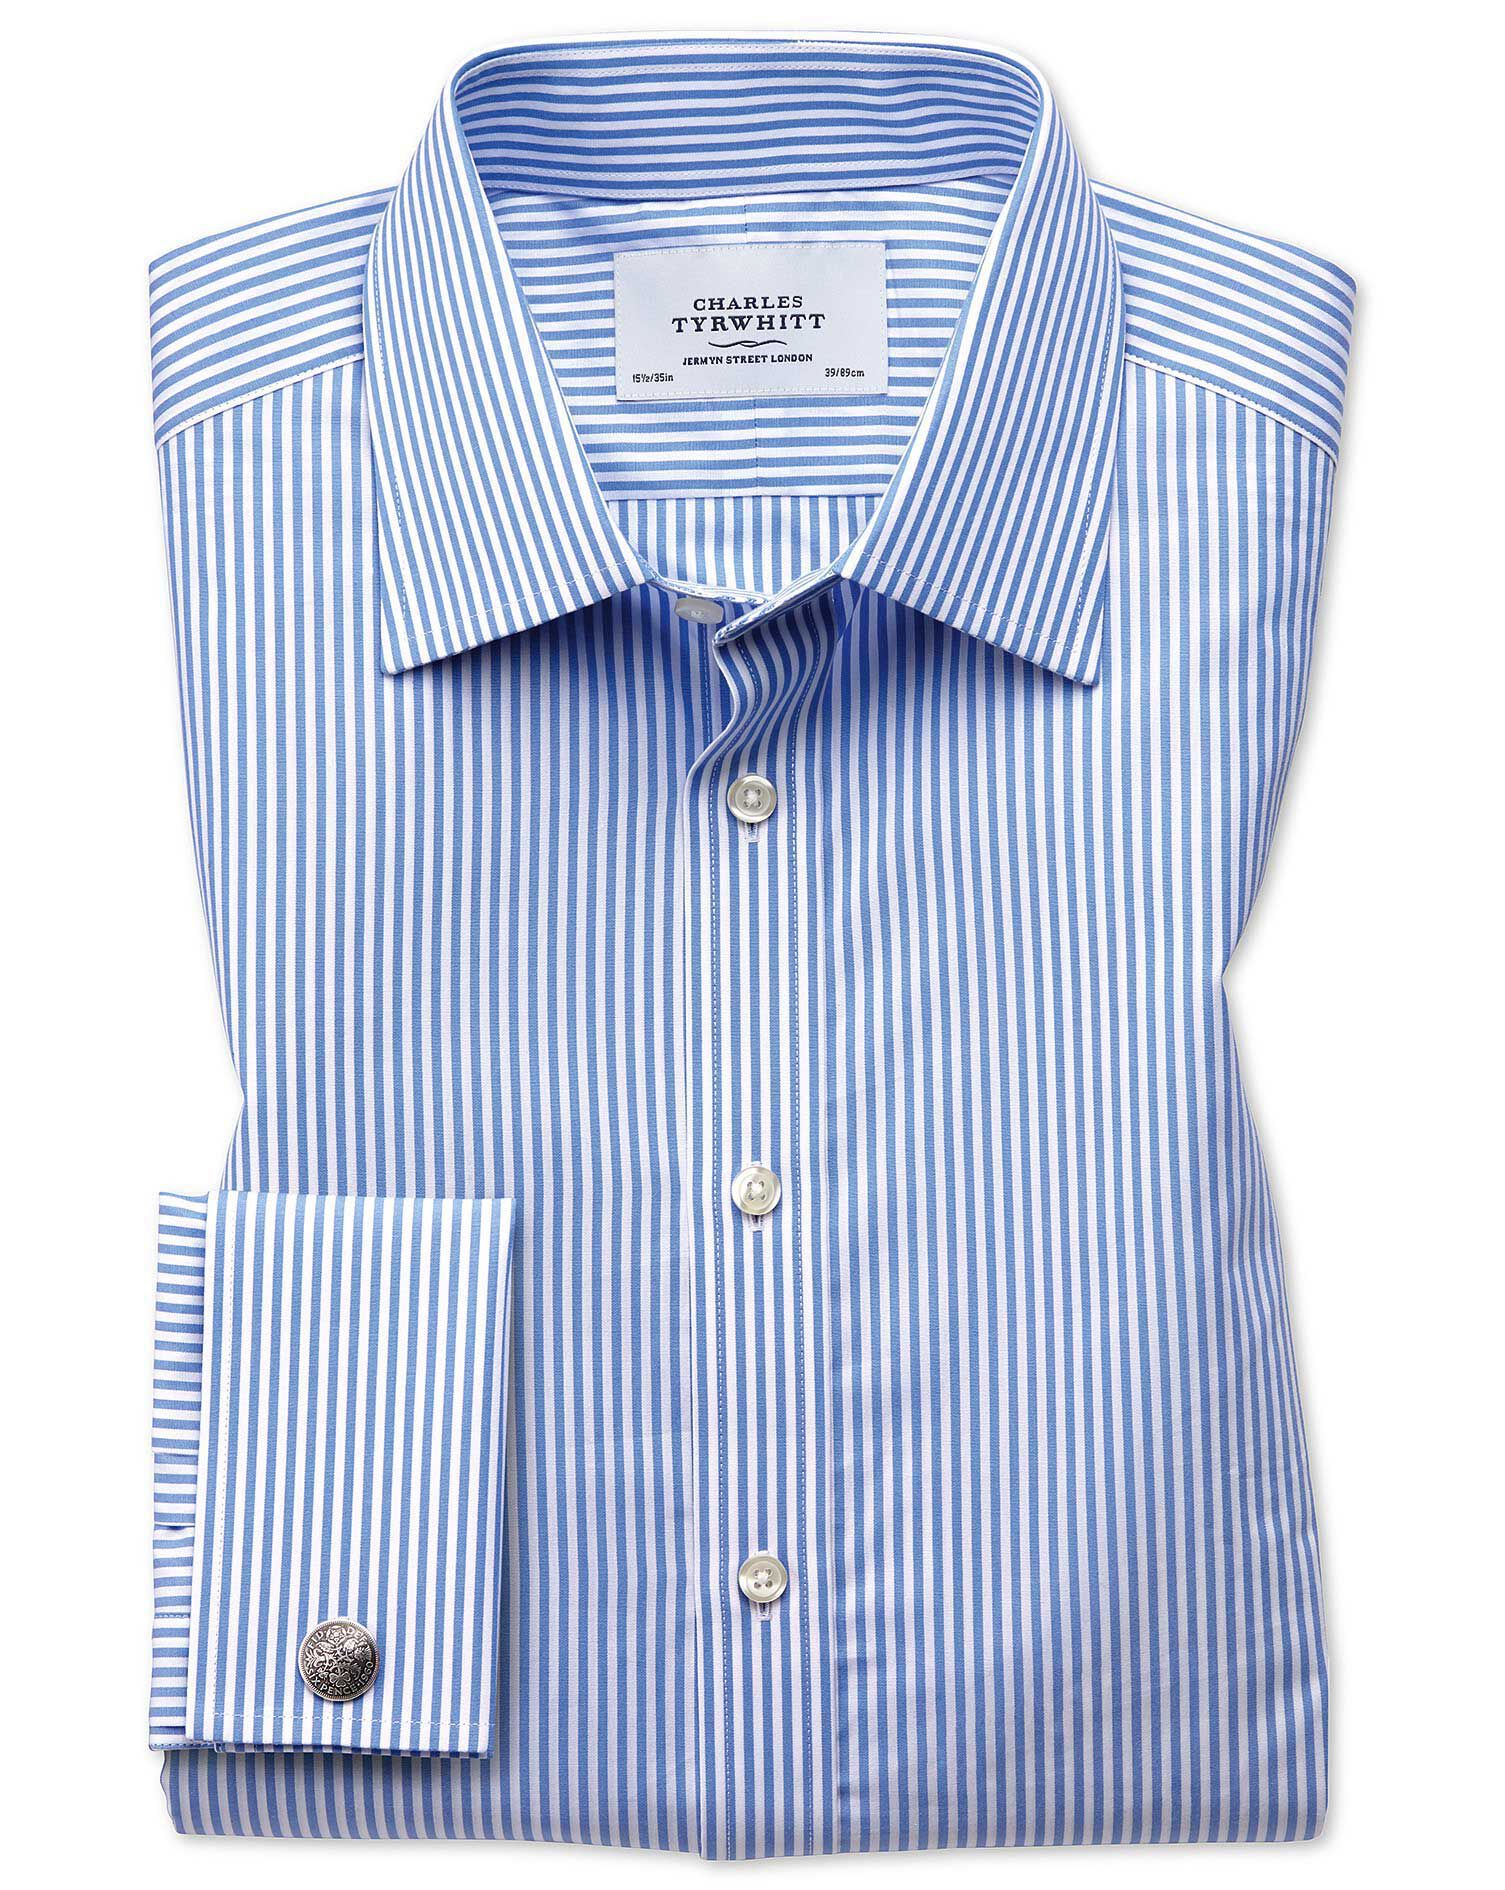 Slim Fit Bengal Stripe Sky Blue Cotton Formal Shirt Single Cuff Size 17.5/35 by Charles Tyrwhitt